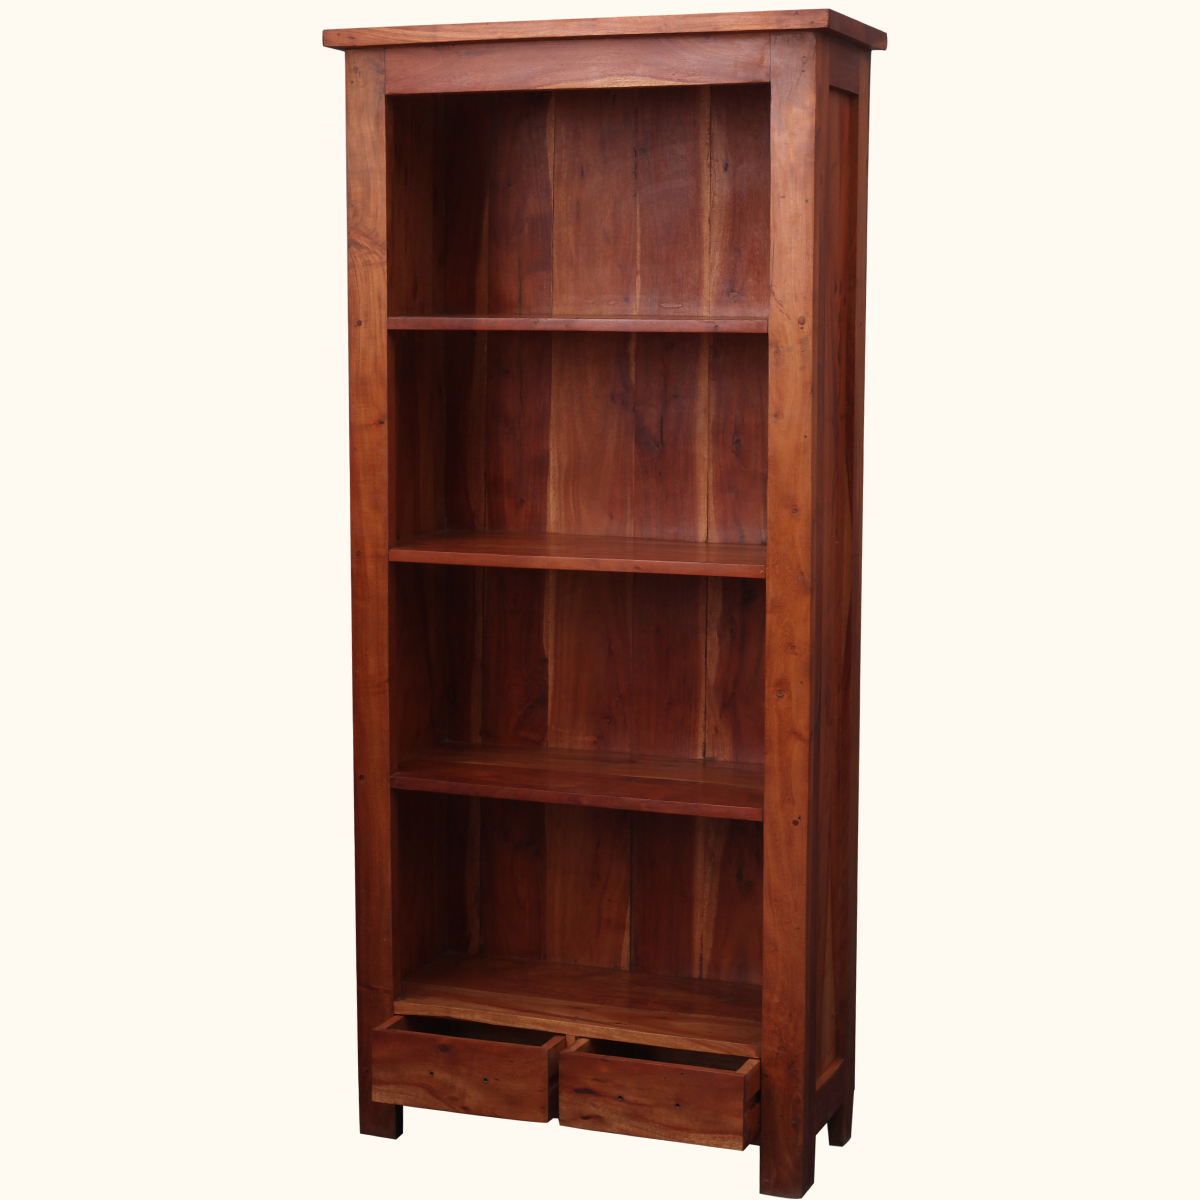 Large rustic shelf bookcase solid acacia wood modern